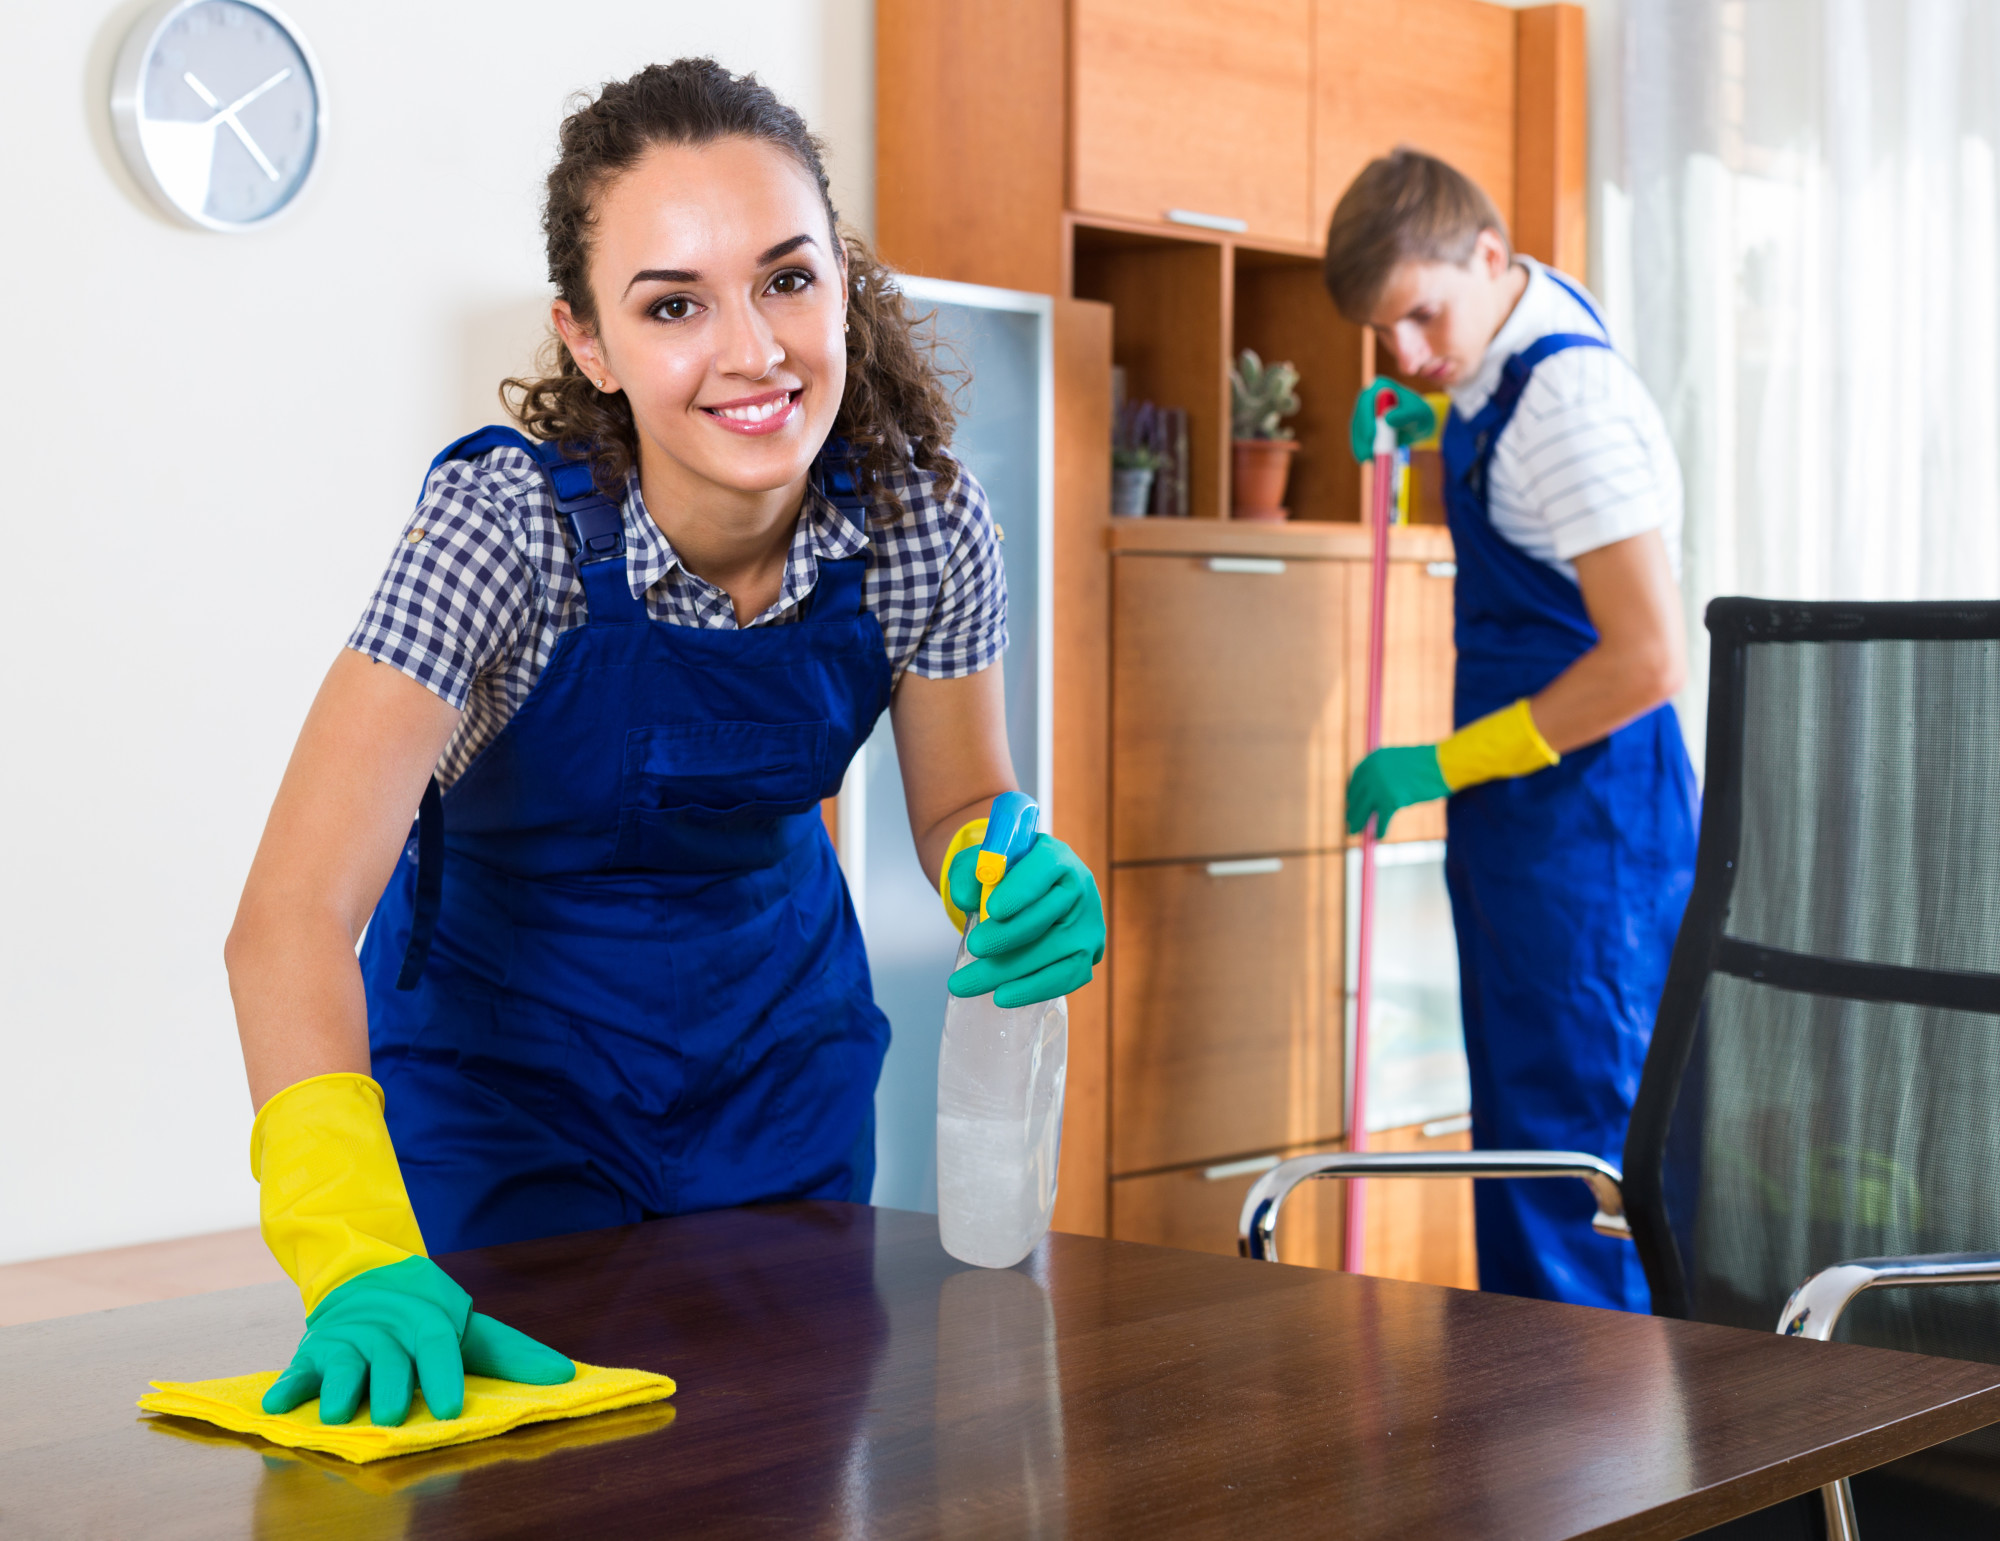 Hire a Professional House Cleaning Service